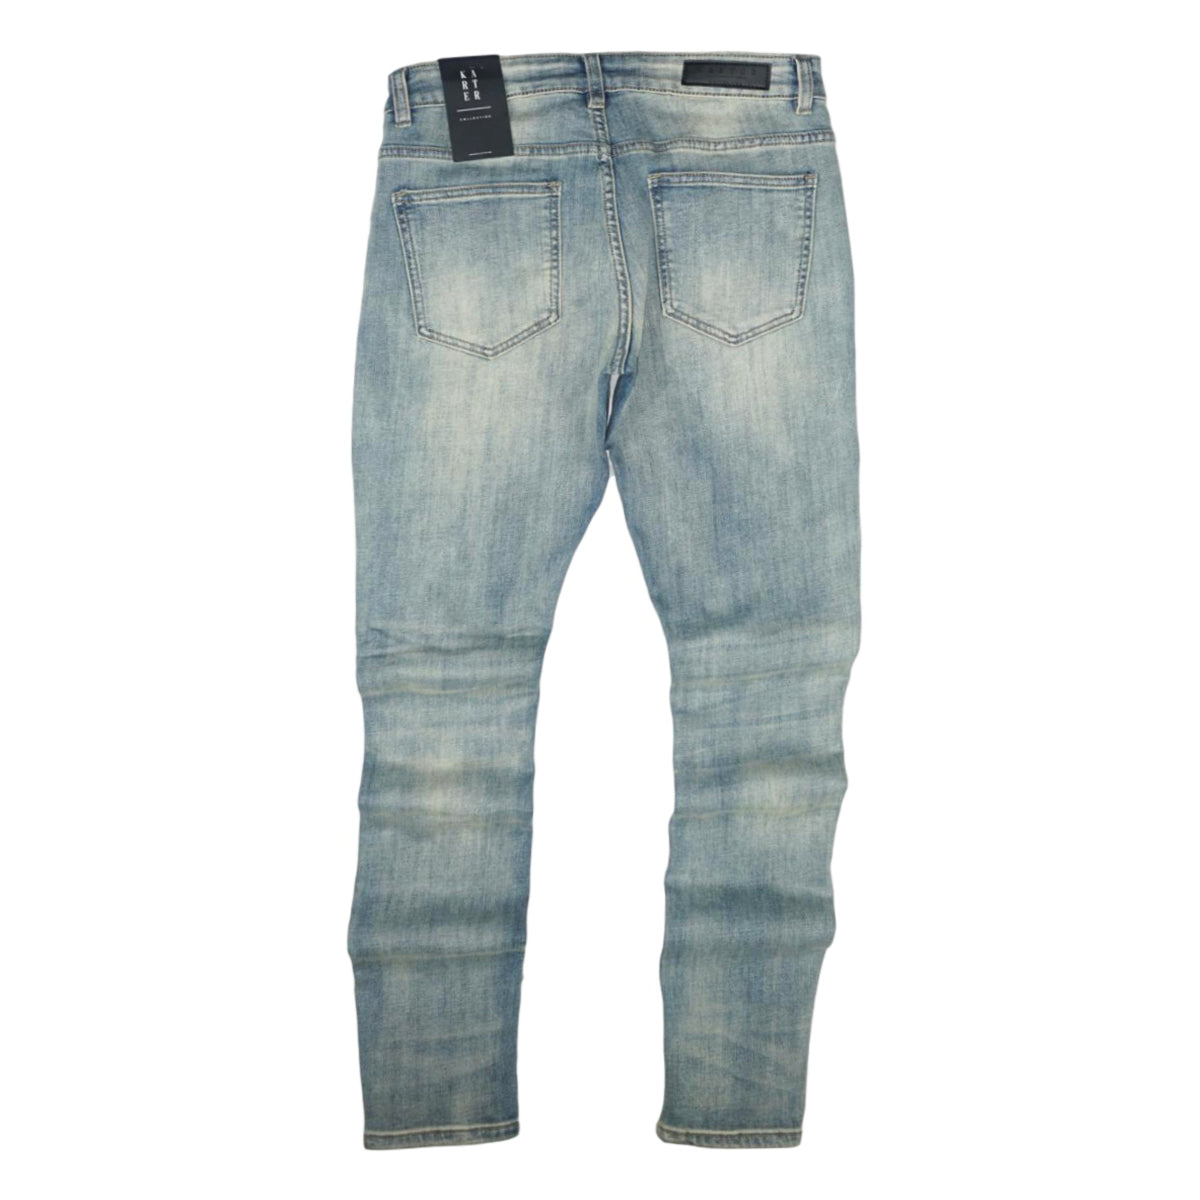 Arias Jeans (Light Denim)/C5